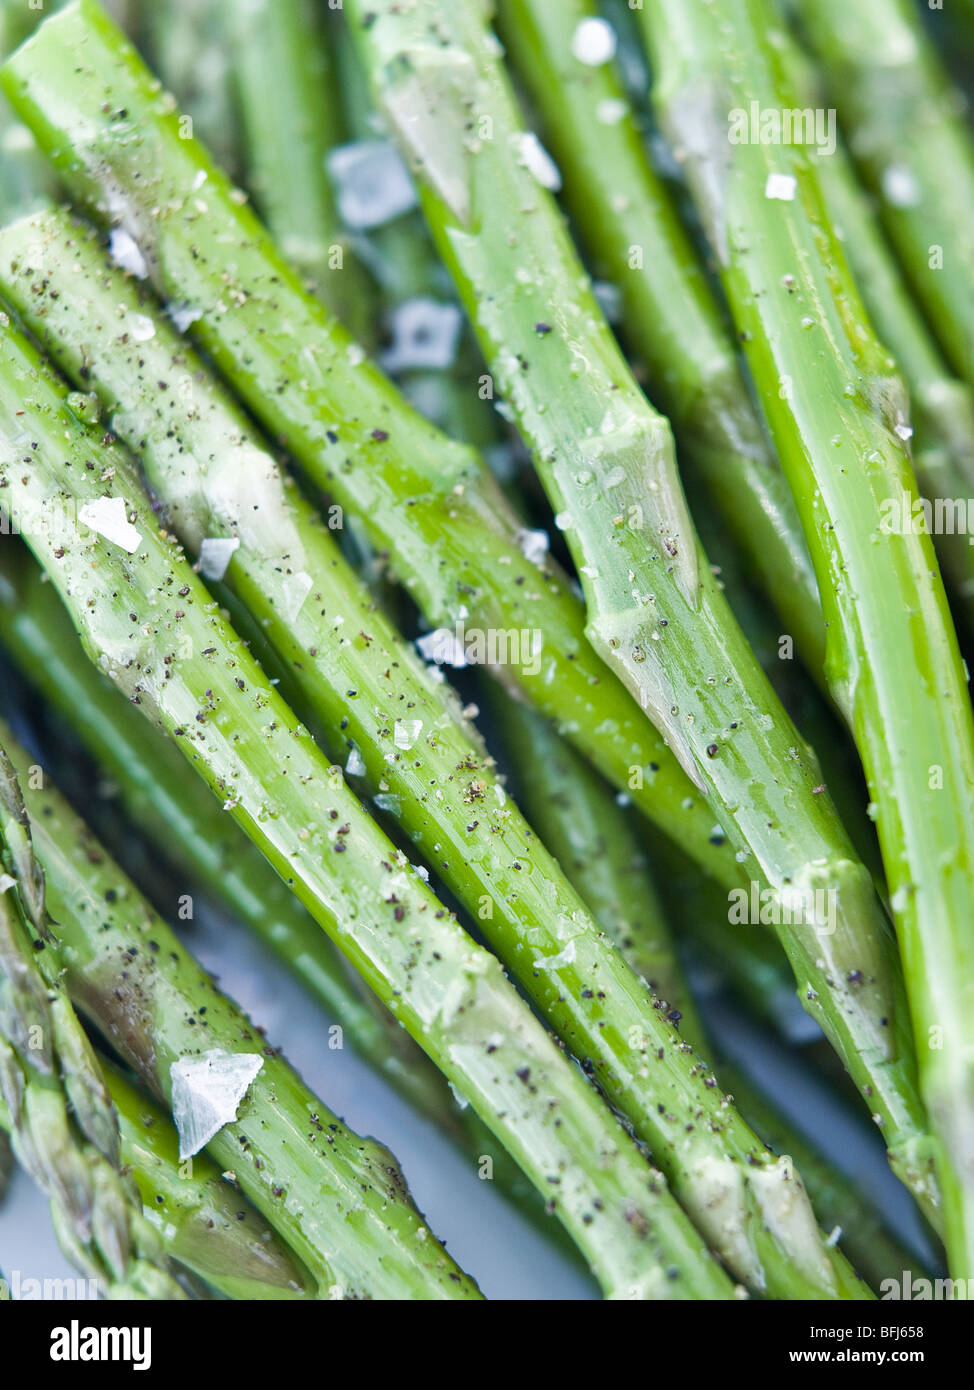 Les asperges, close-up, en Suède. Photo Stock